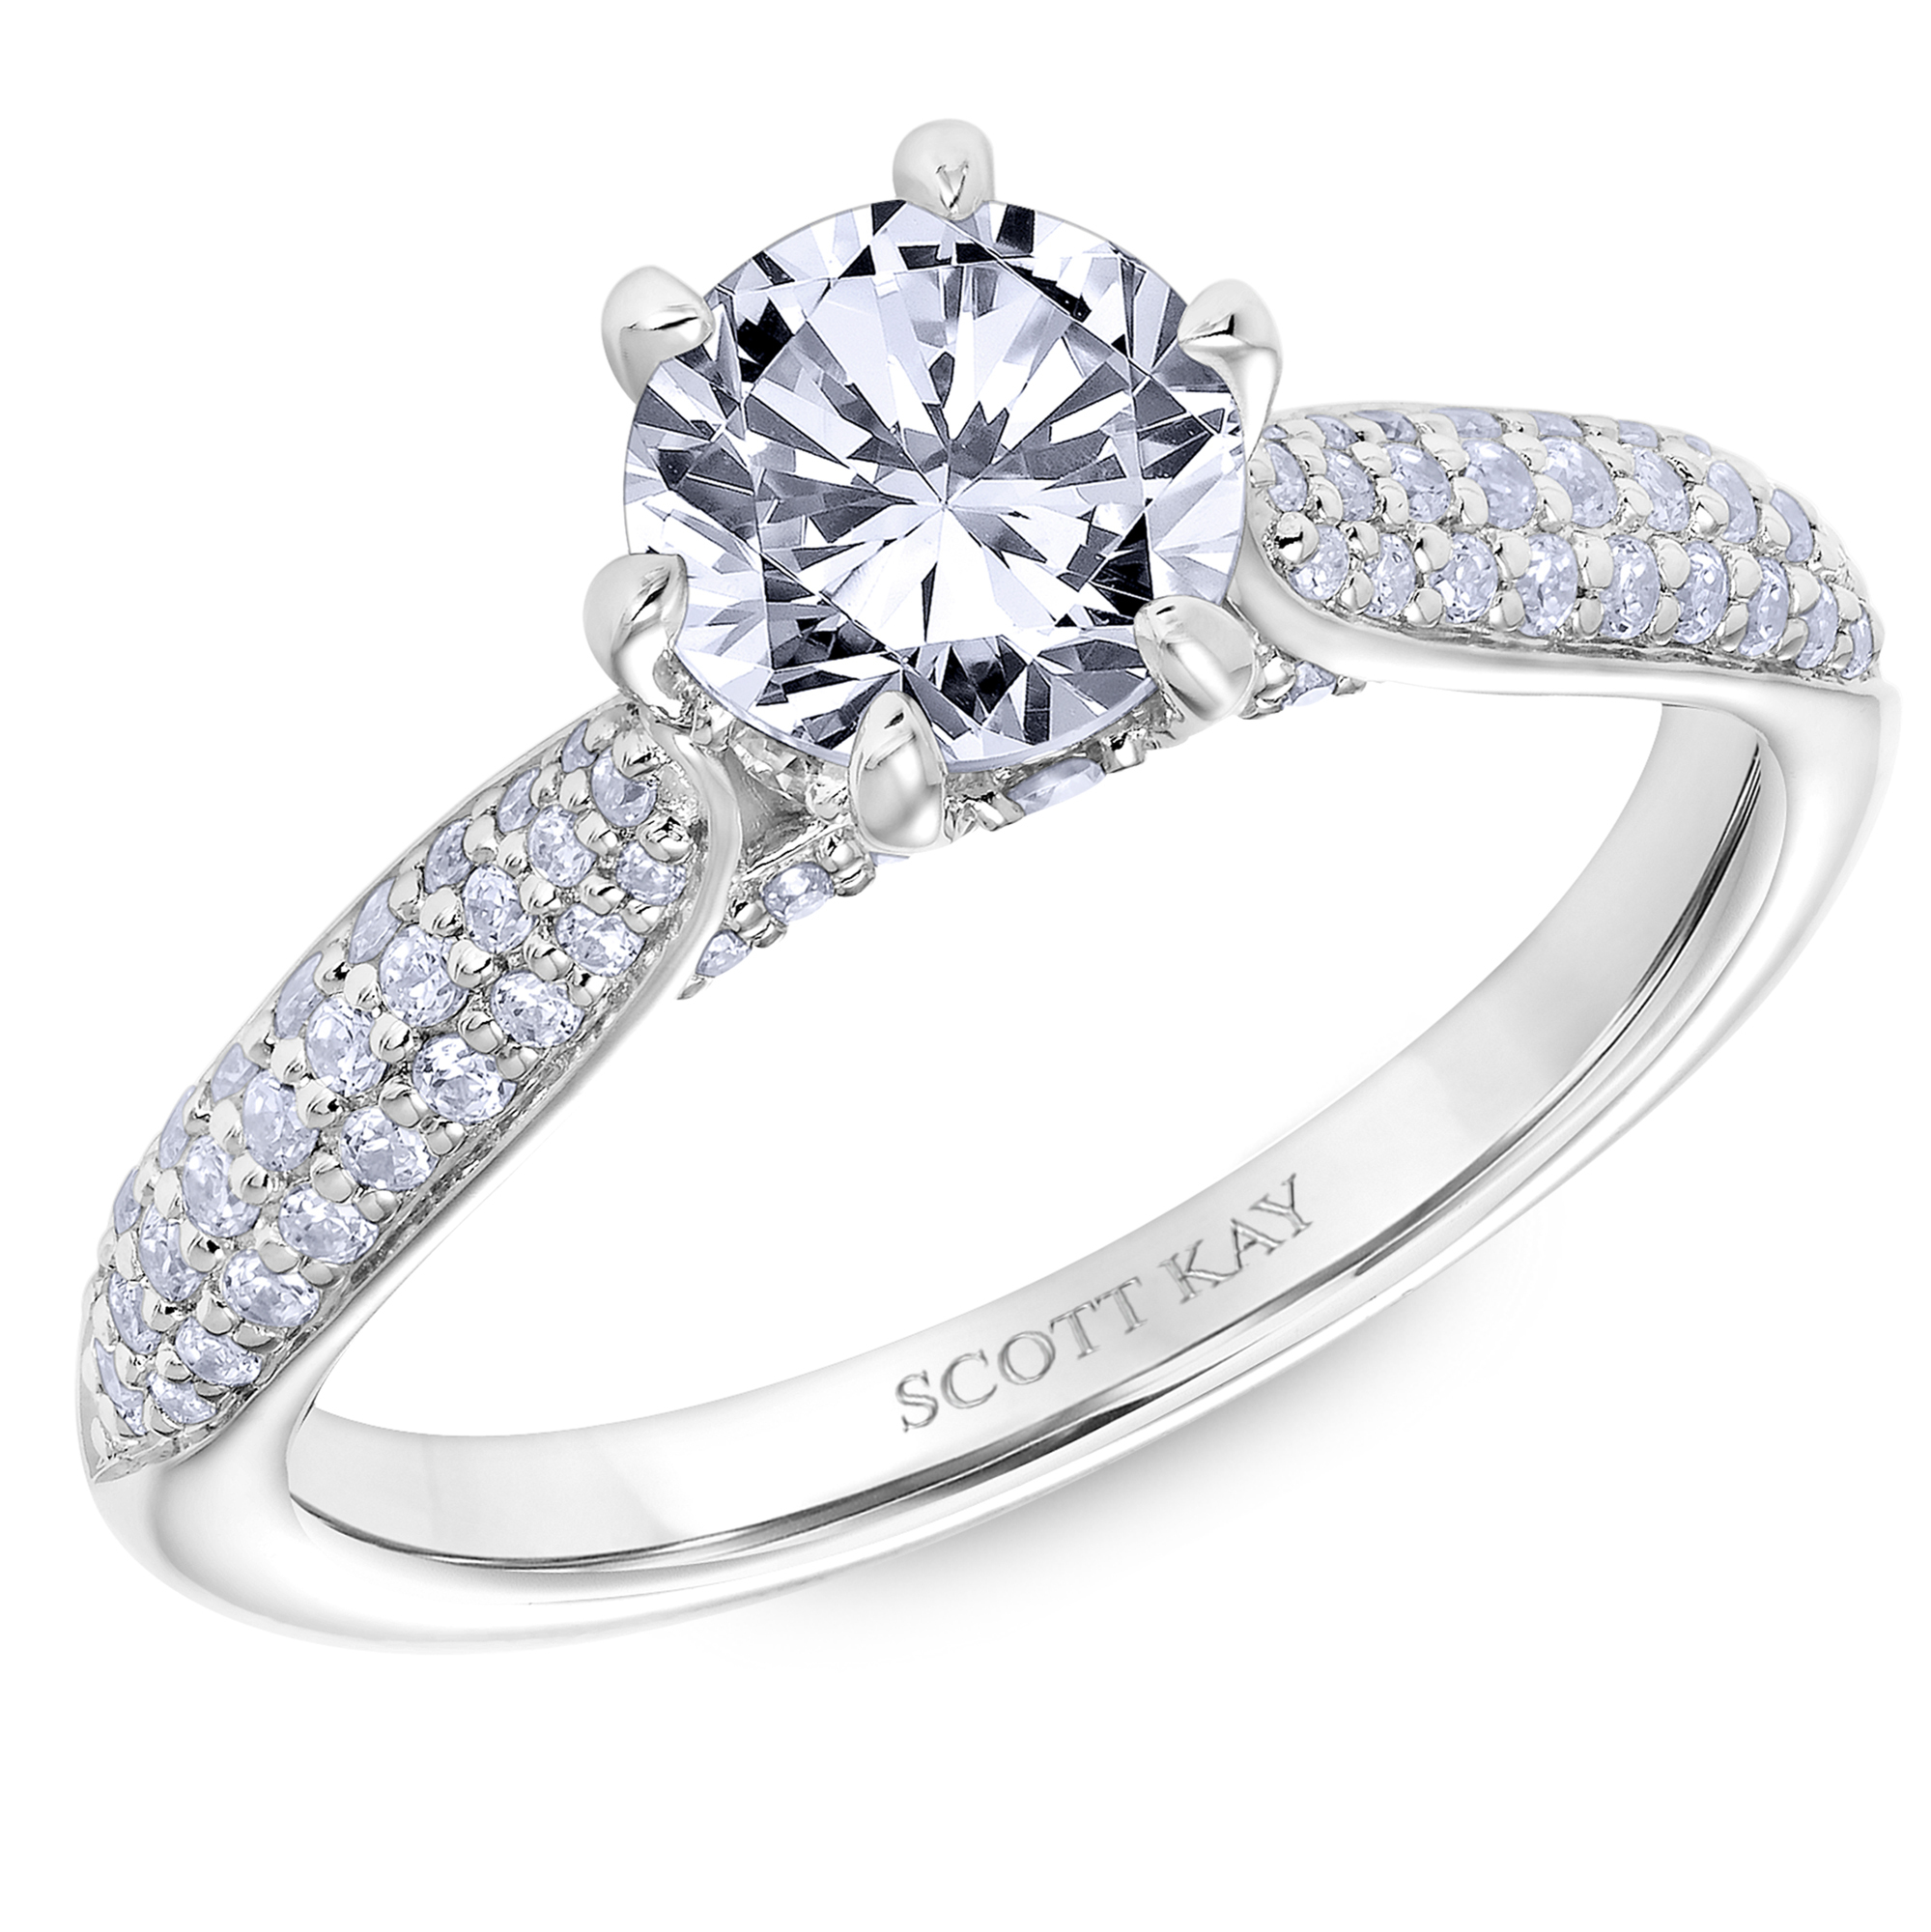 fd rings for engagement jewelry ring at platinum master diamond scott j sale kay veg carat id